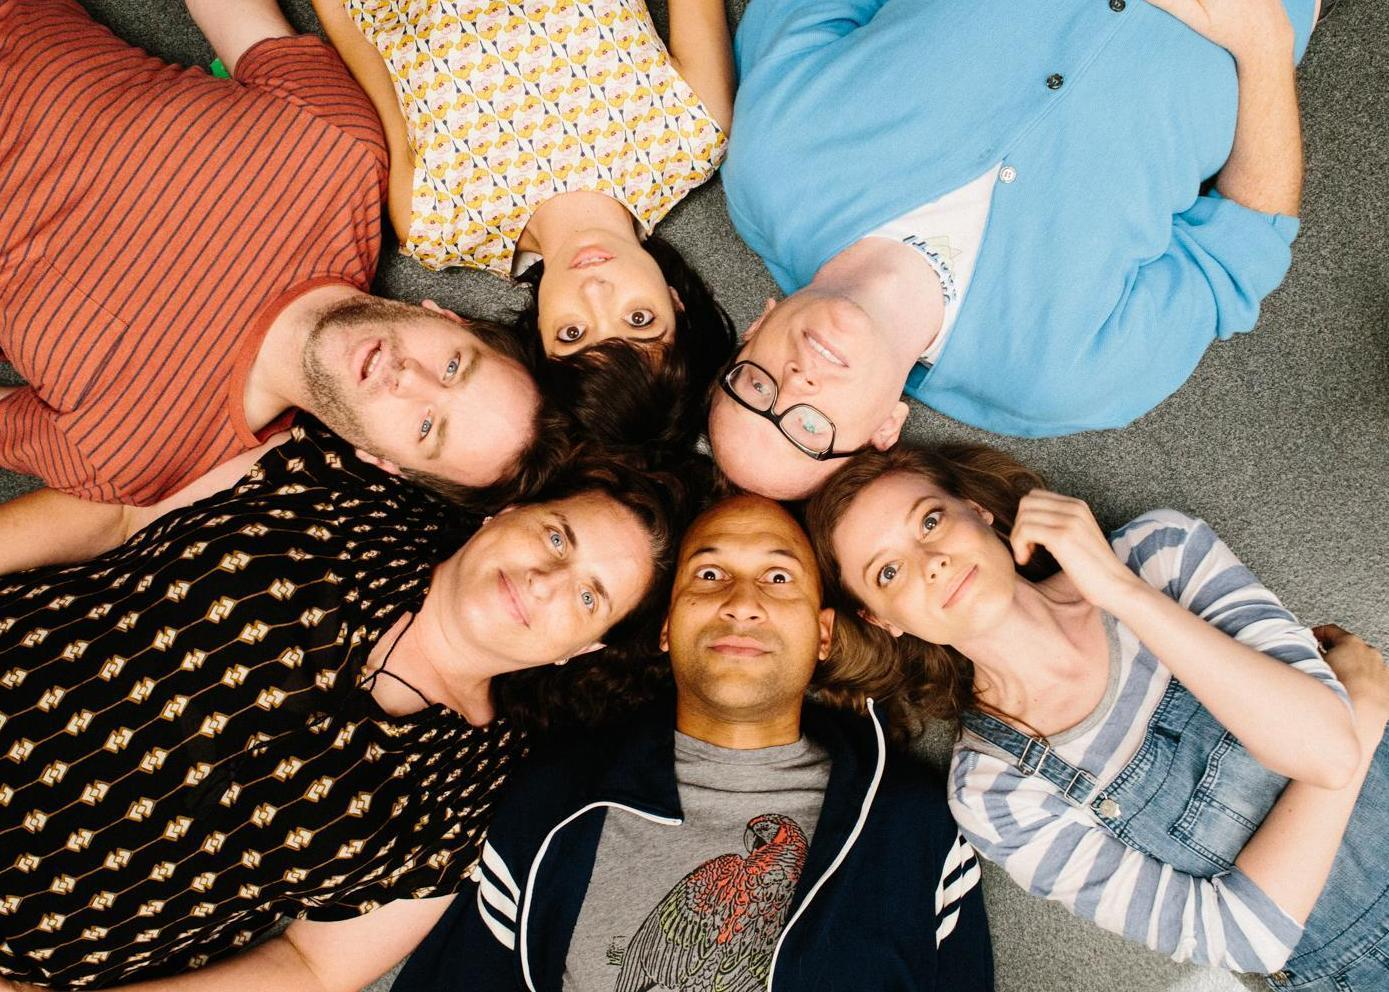 Clockwise, from top: Tami Sagher, Keegan-Michael Key, Gillian Jacobs, Chris Gethard, Kate Micucci and Mike Birbiglia in 'Don't Think Twice.'